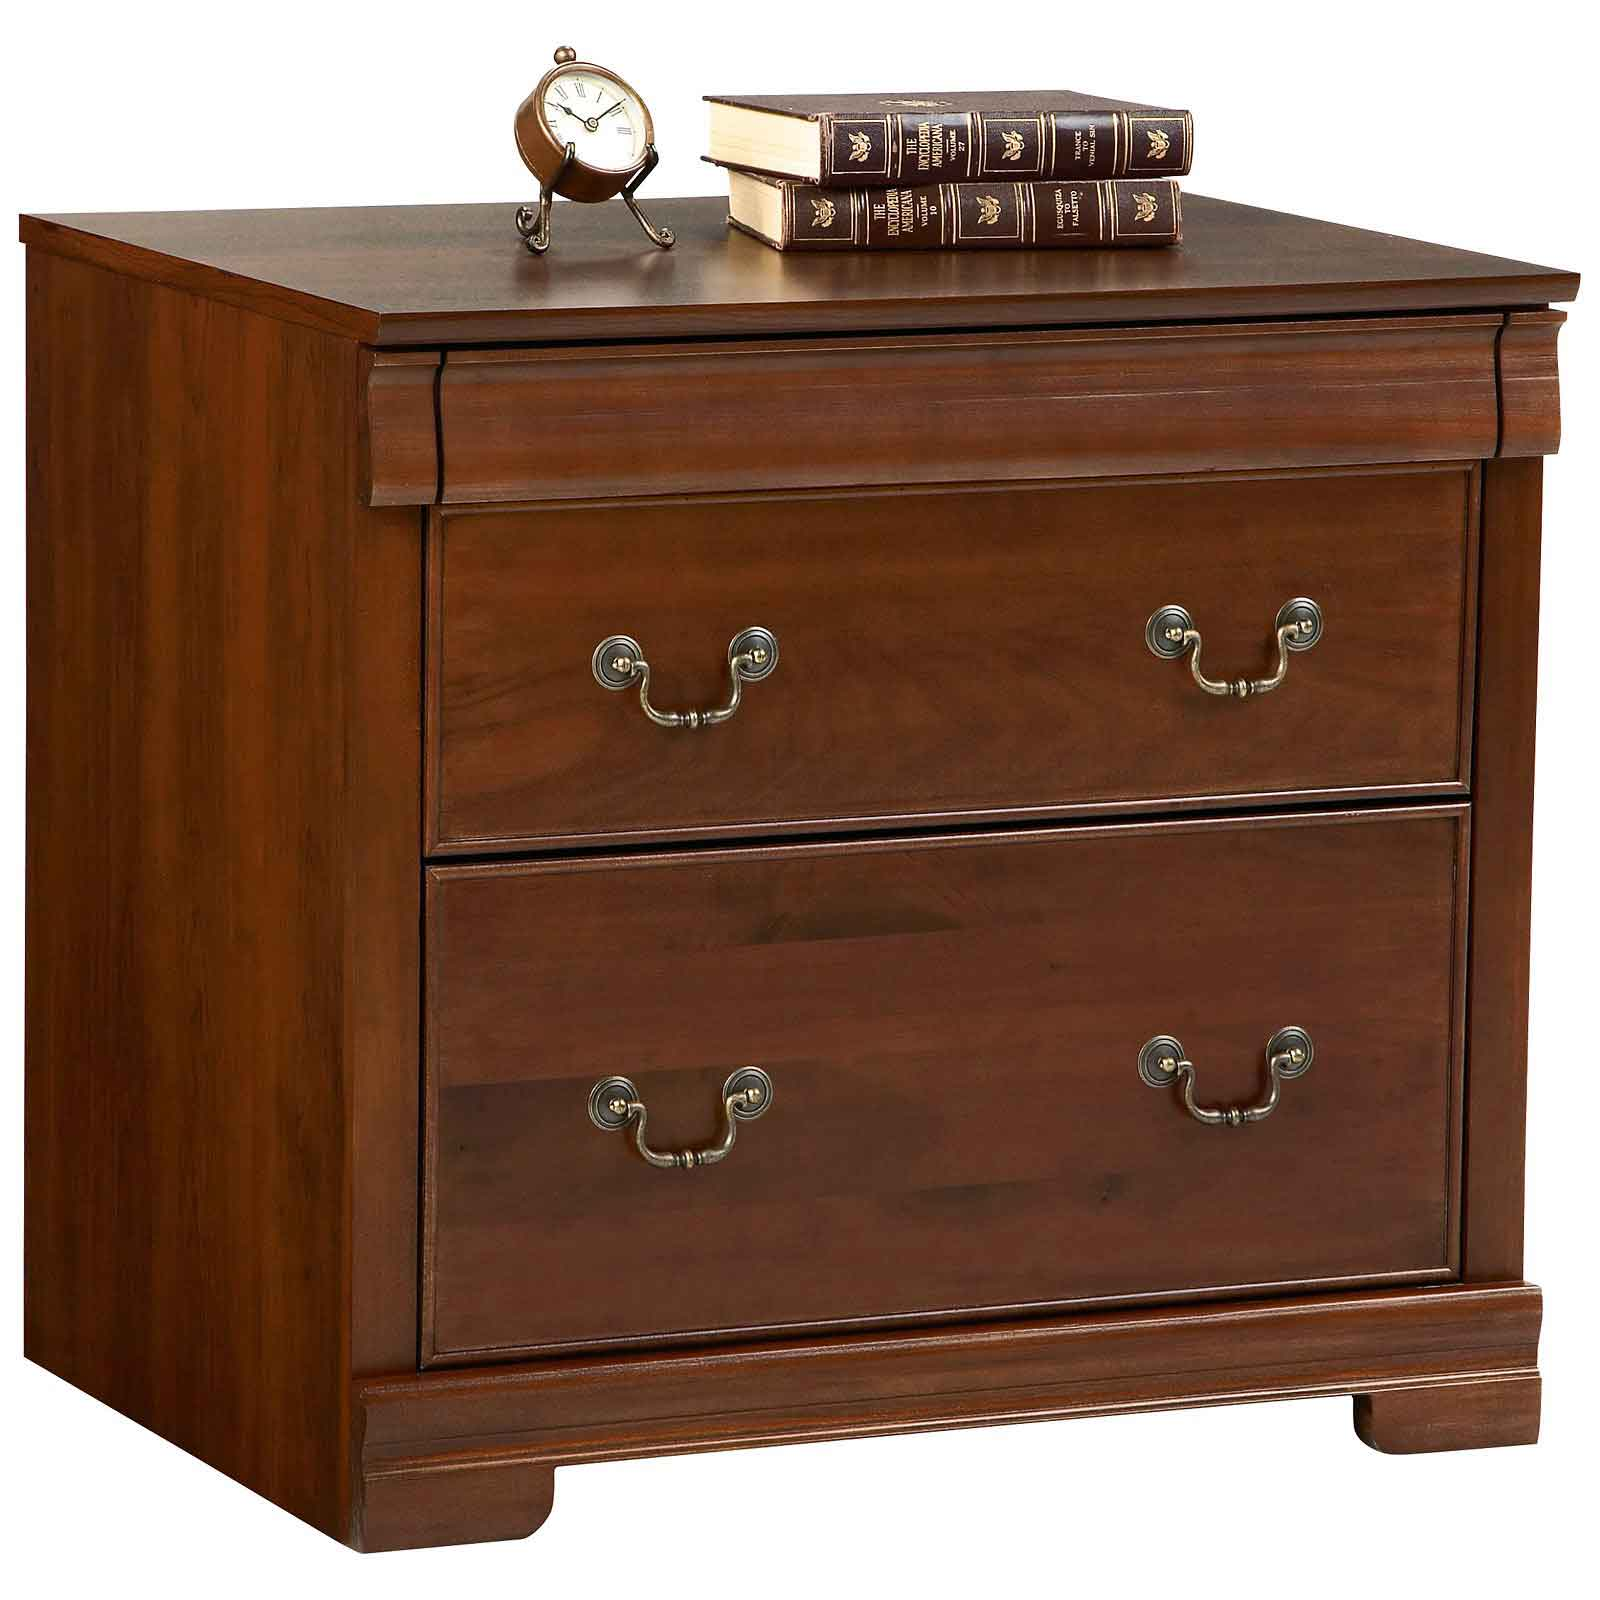 Avignon Wooden Lateral File Cabinet